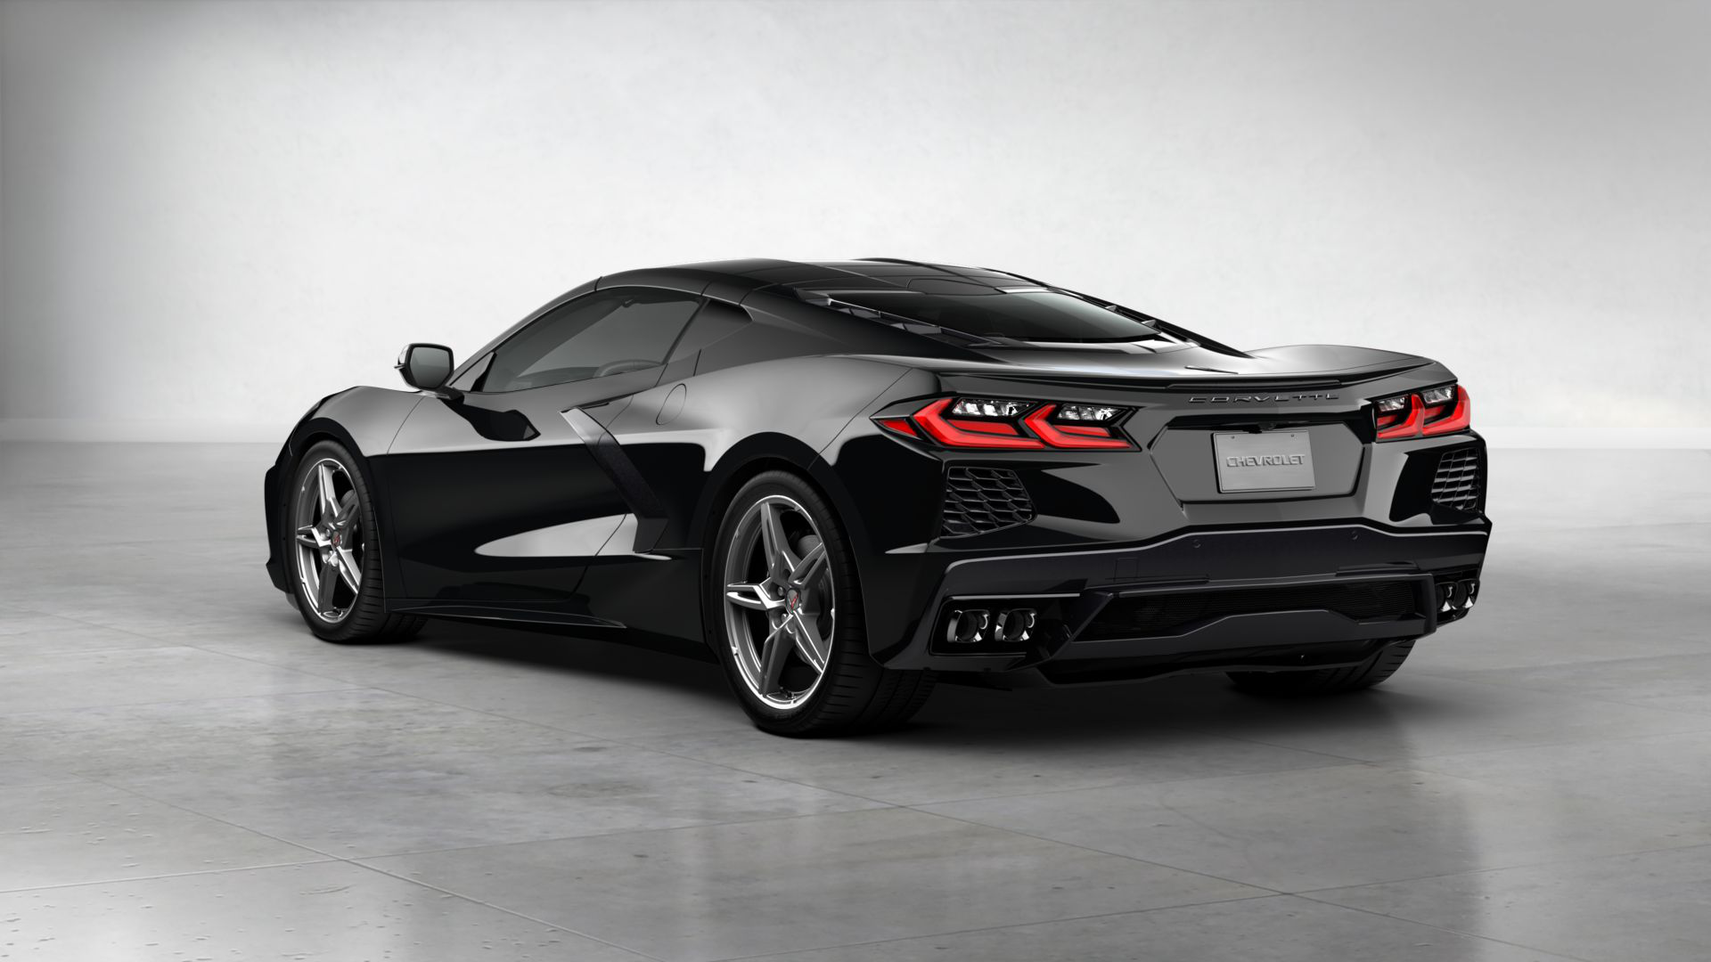 Chevrolet Corvette Stingray 2020 1LT Coupe 6.2 V8 DI VVT Бензин 8 ст АКПП Задний